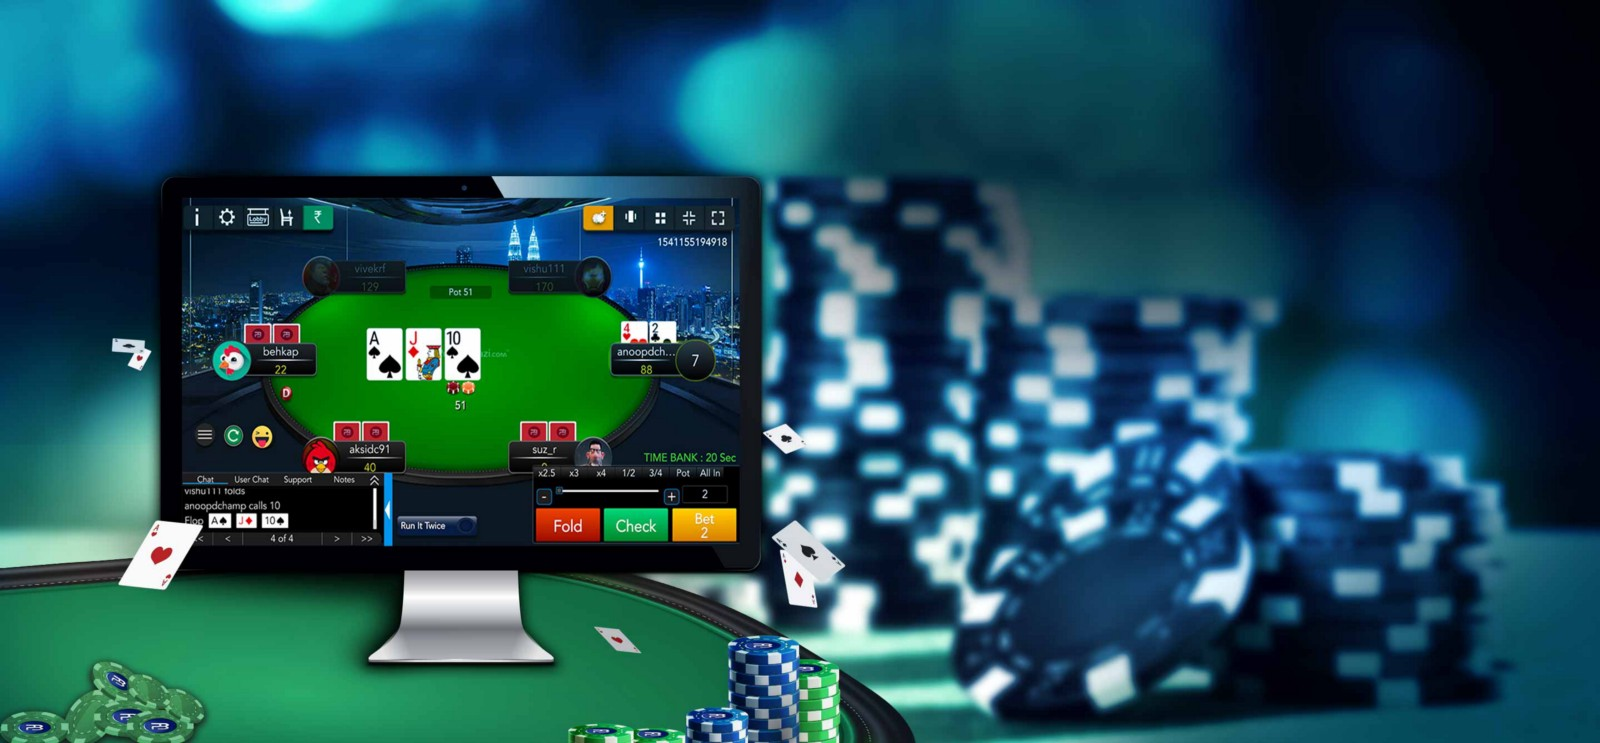 What You Should Know While Playing Poker Online